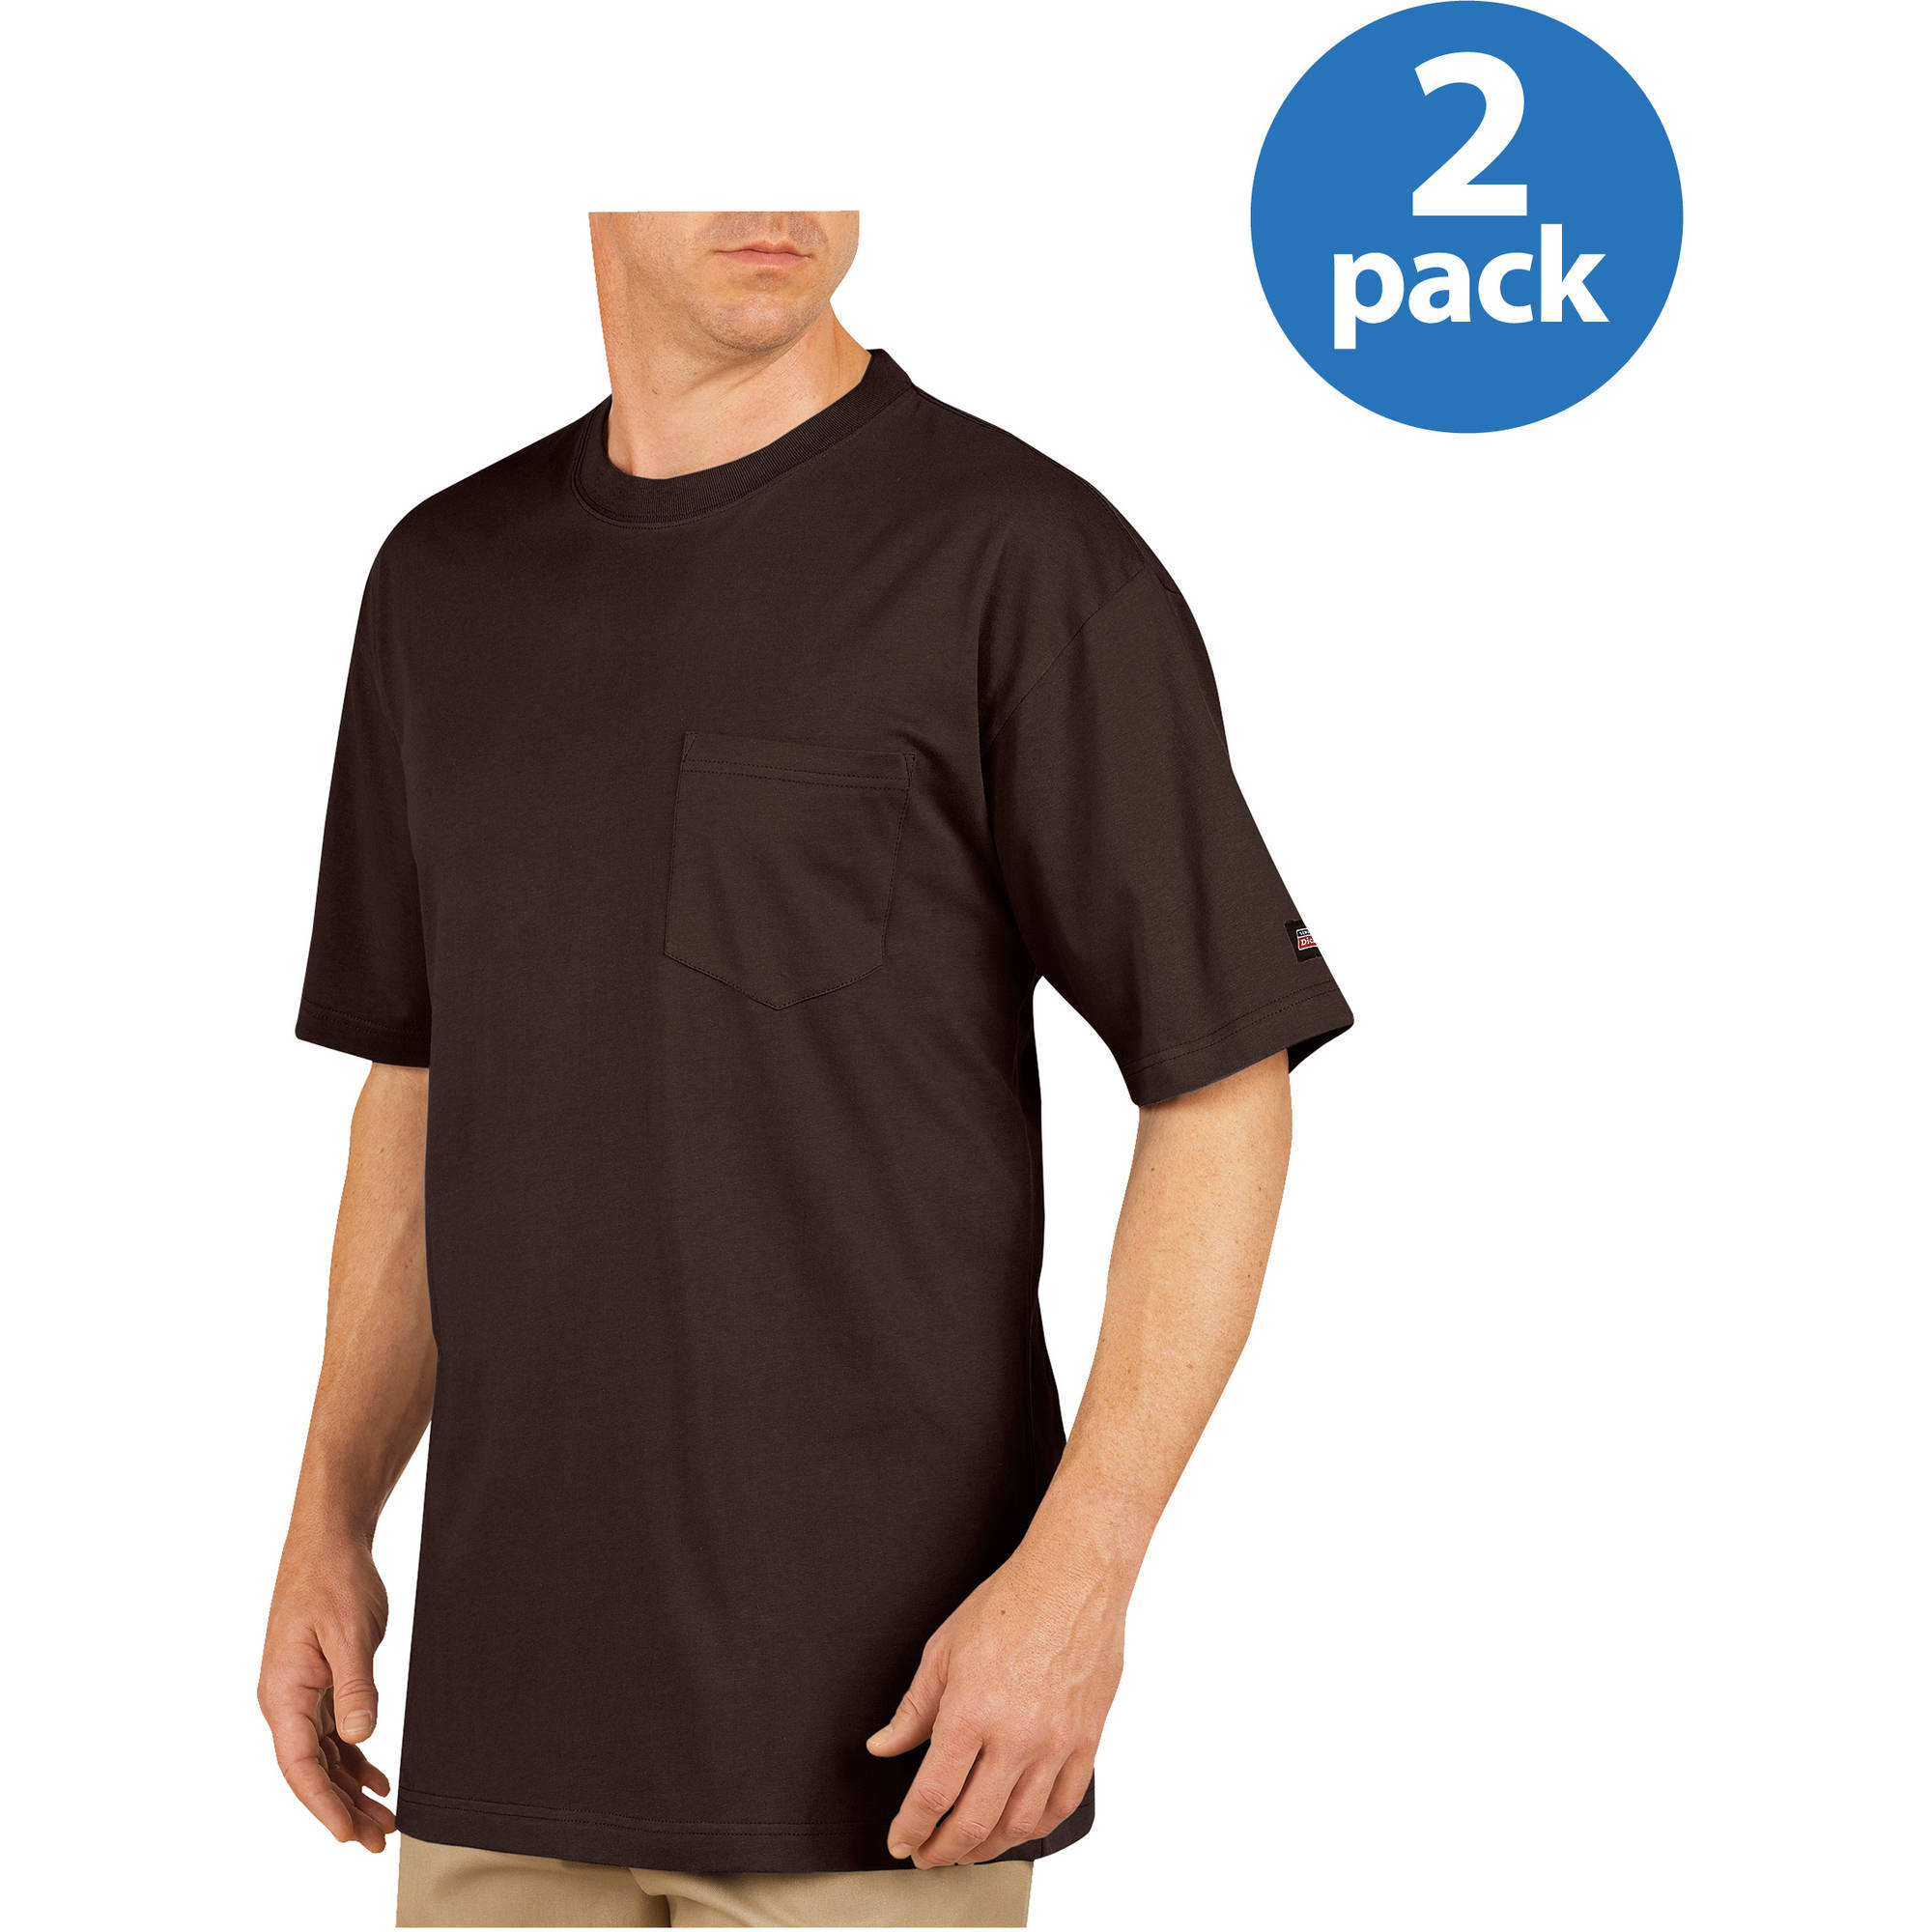 Genuine Dickies Pocket Tees, 2-Pack